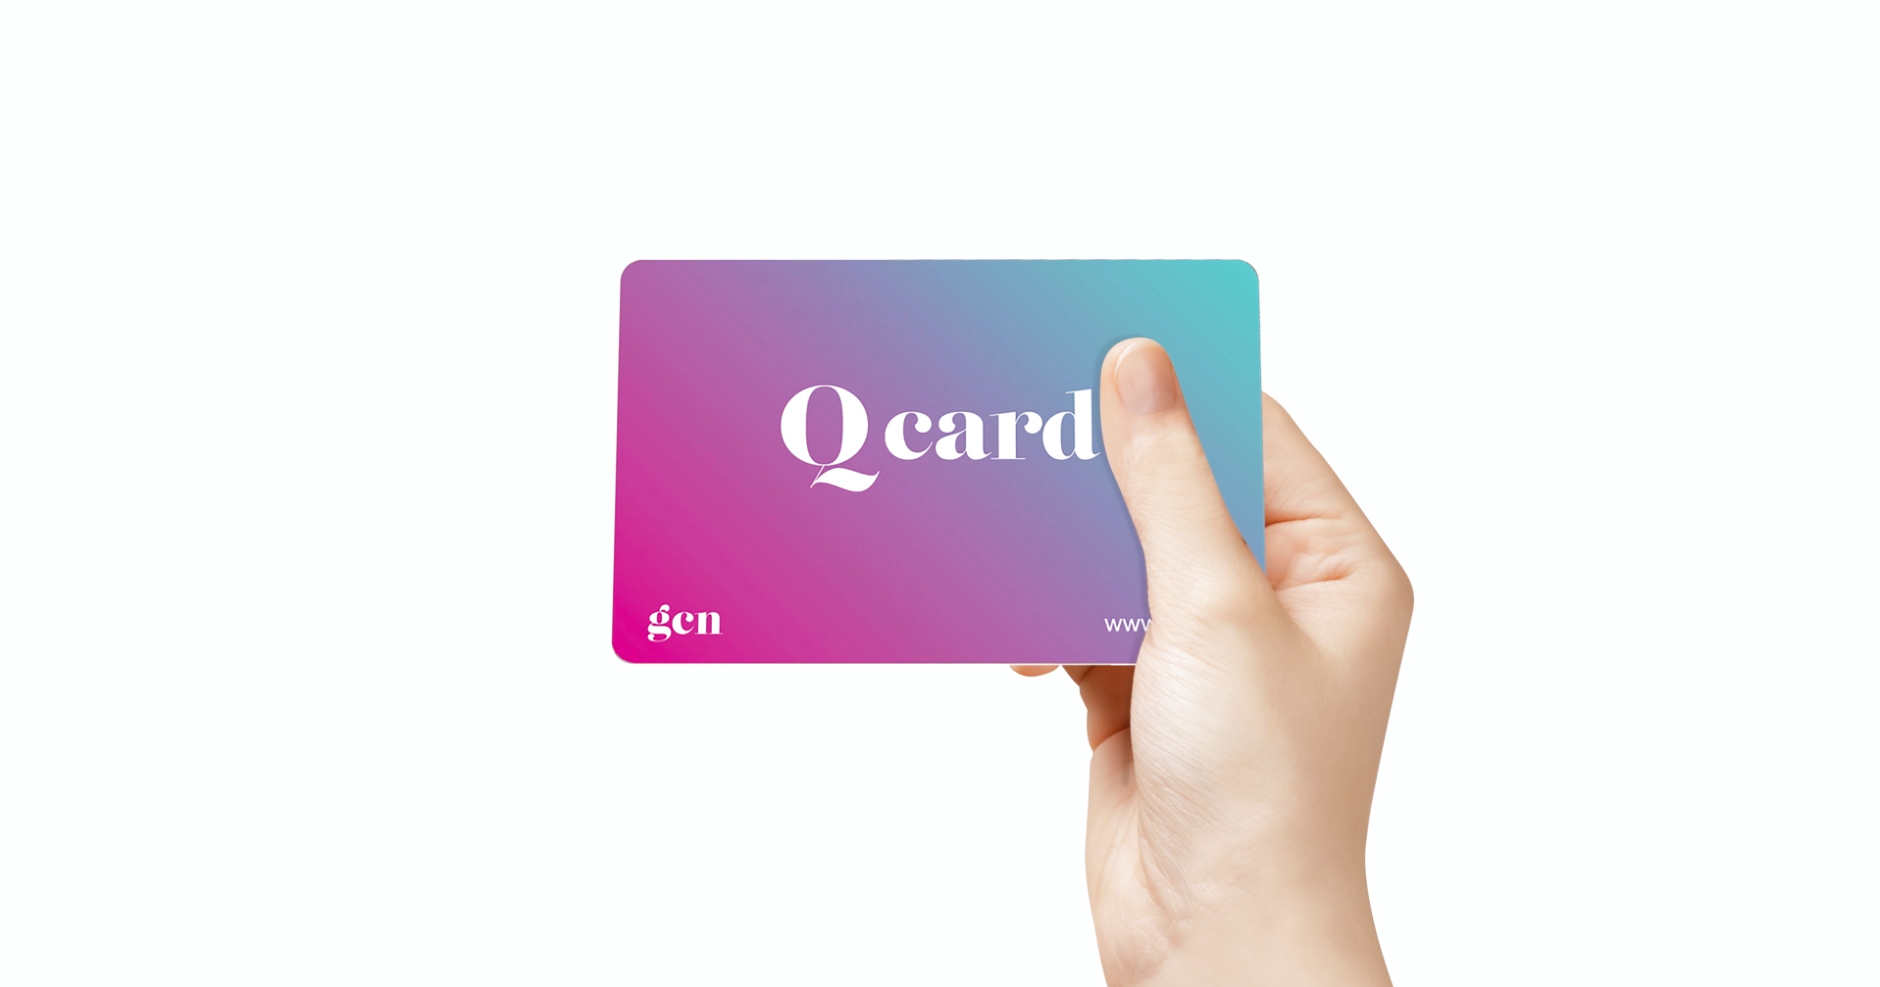 A hand holding GCN's Q Card